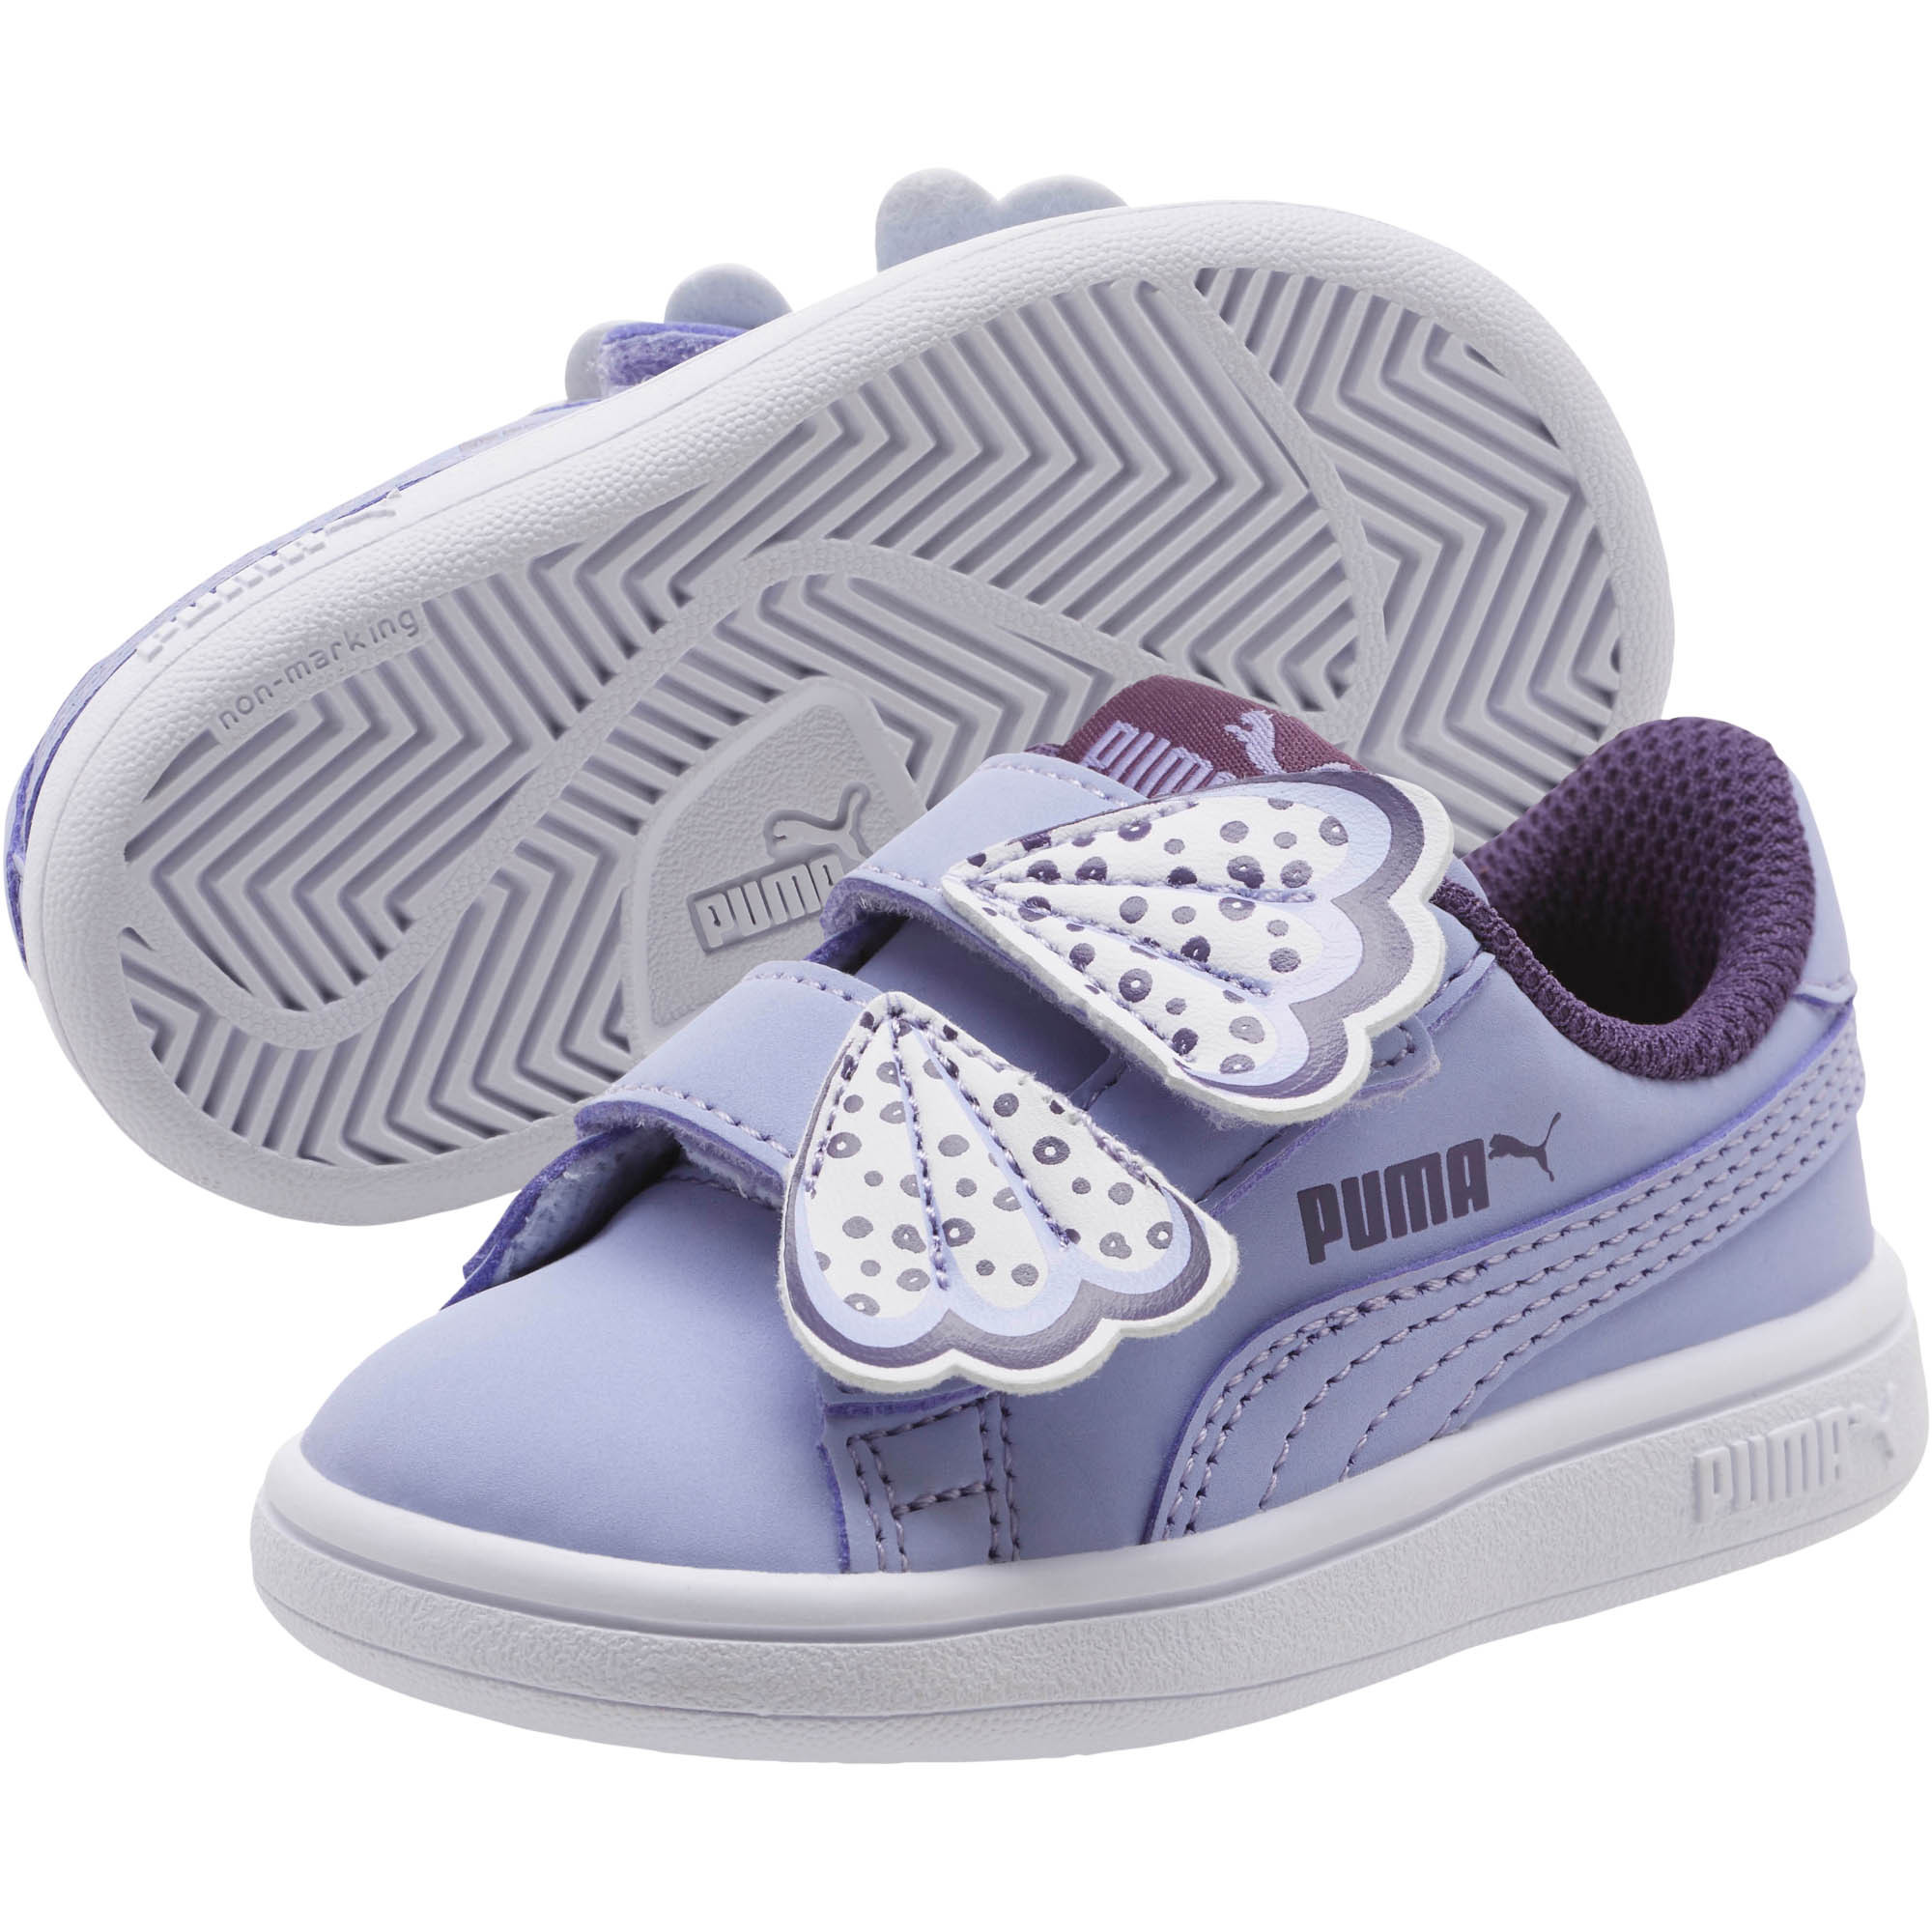 Official Puma Store  PUMA Smash v2 Butterfly AC Sneakers INF ... 1217a73fc